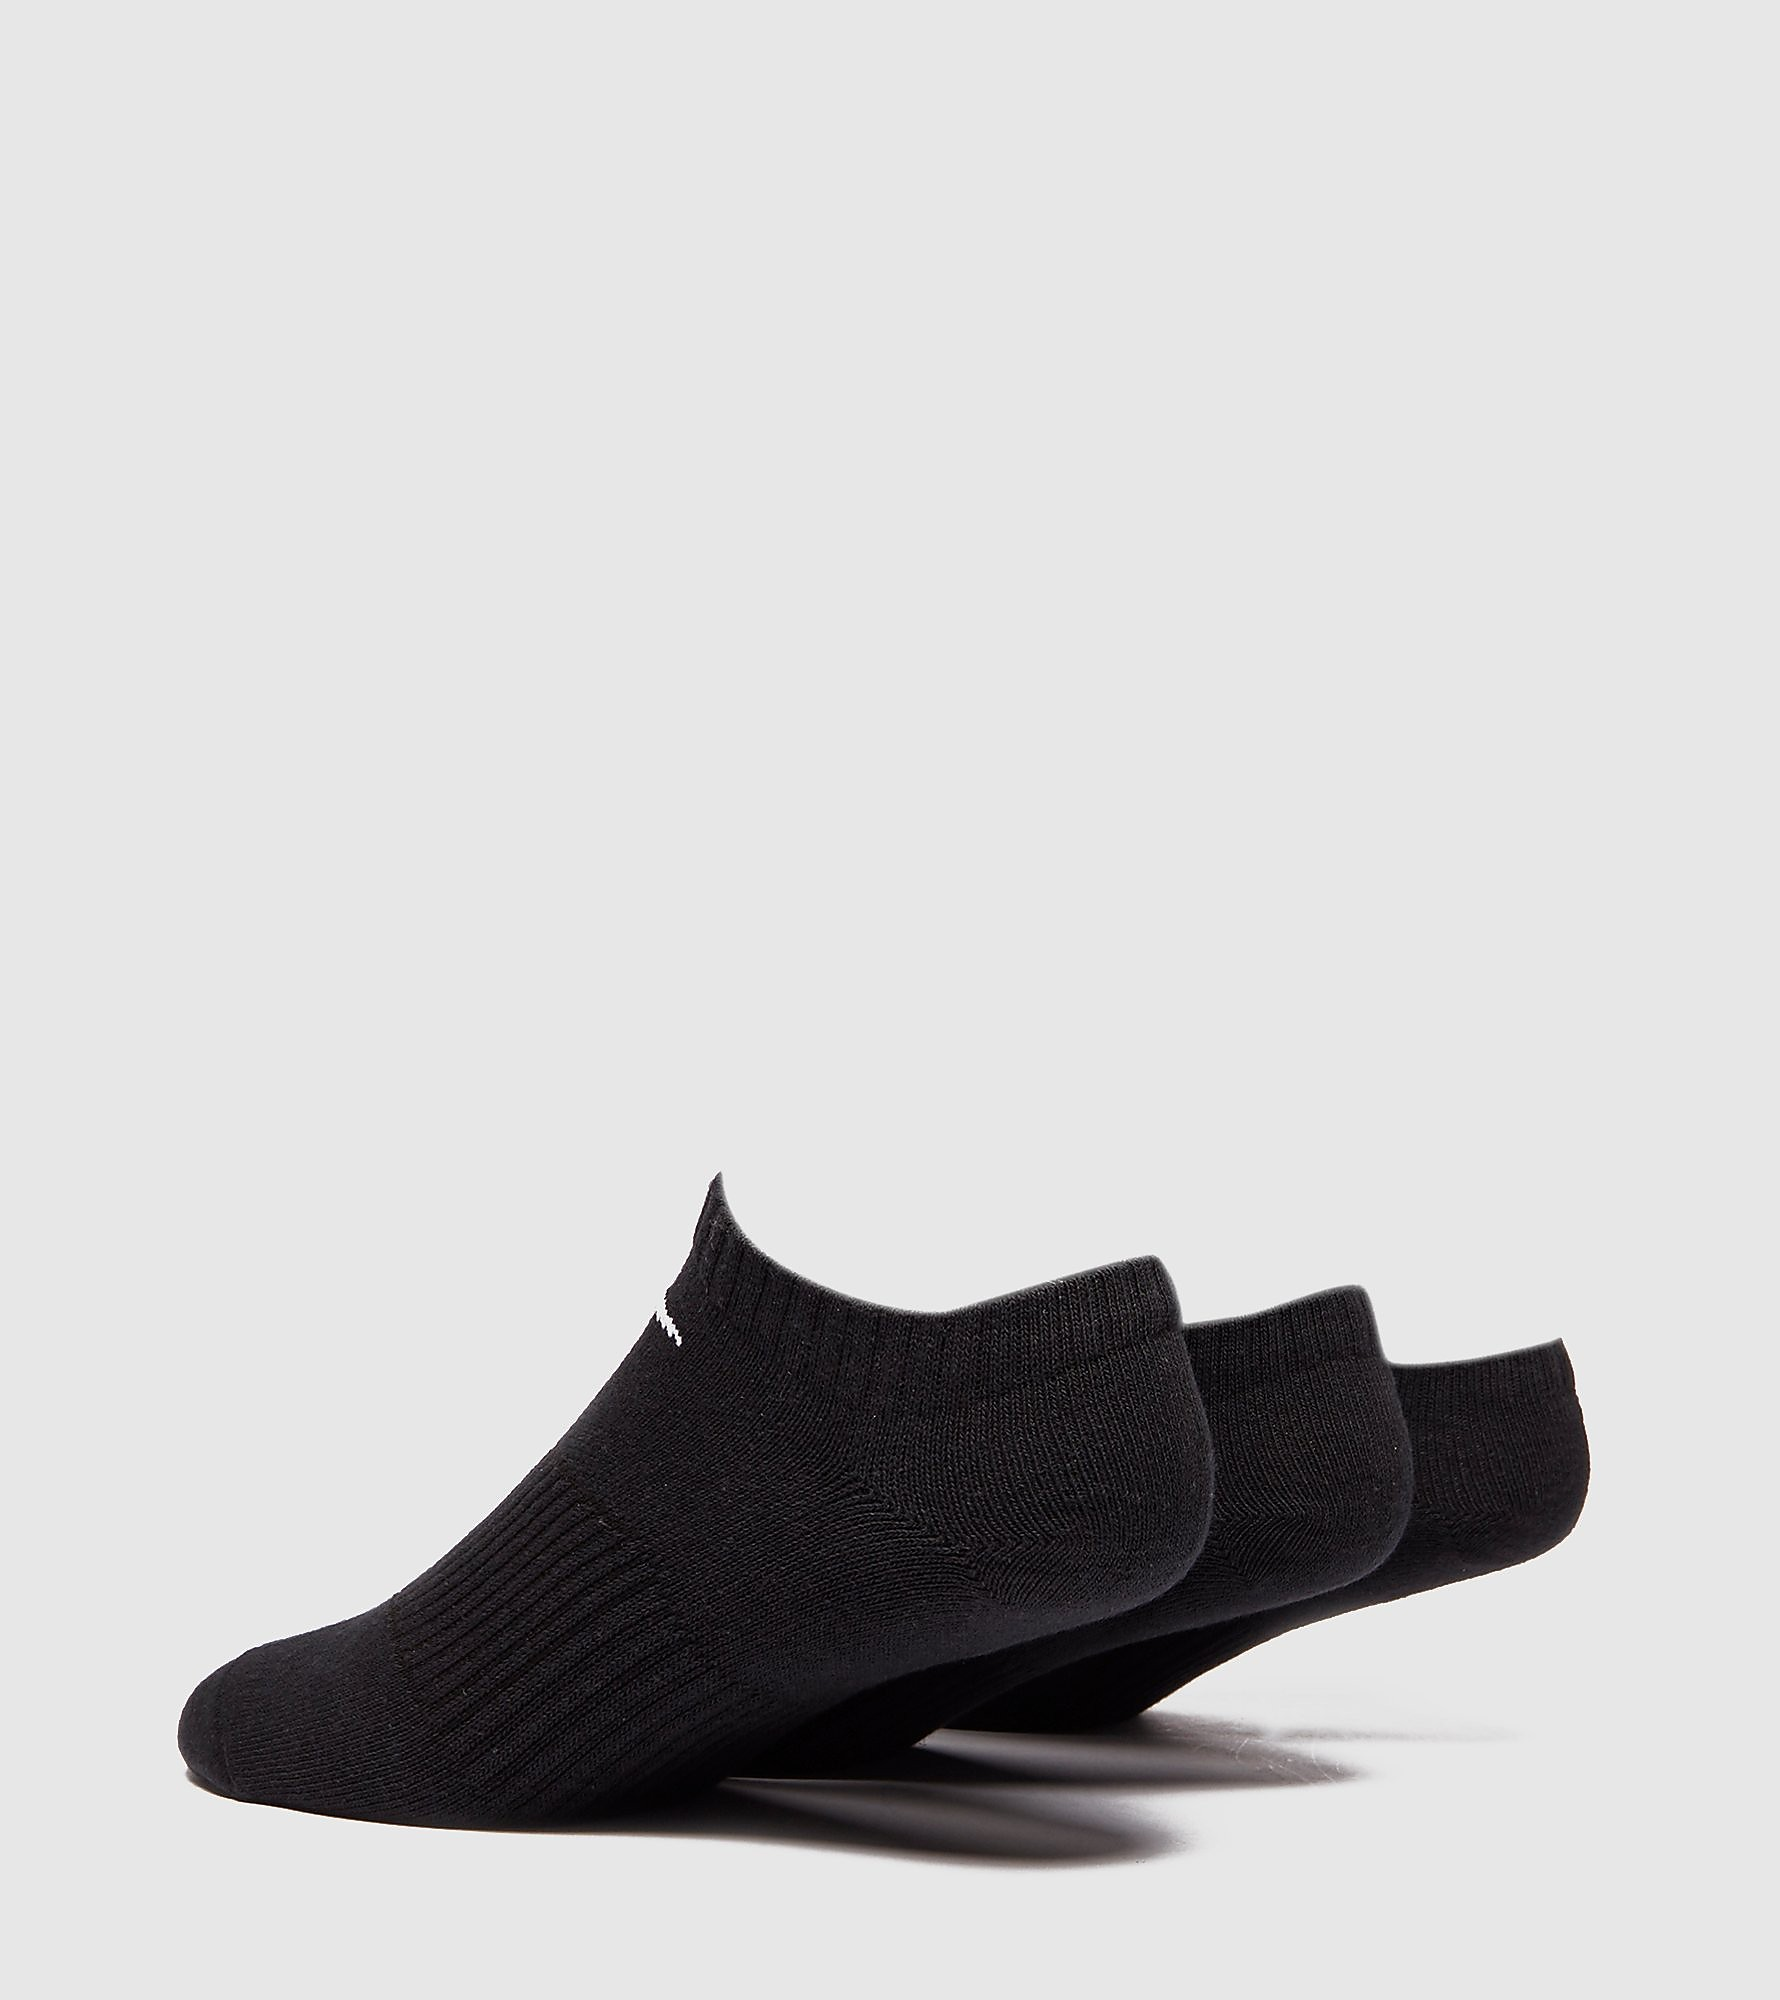 Nike Chaussettes Basses 3 Pack